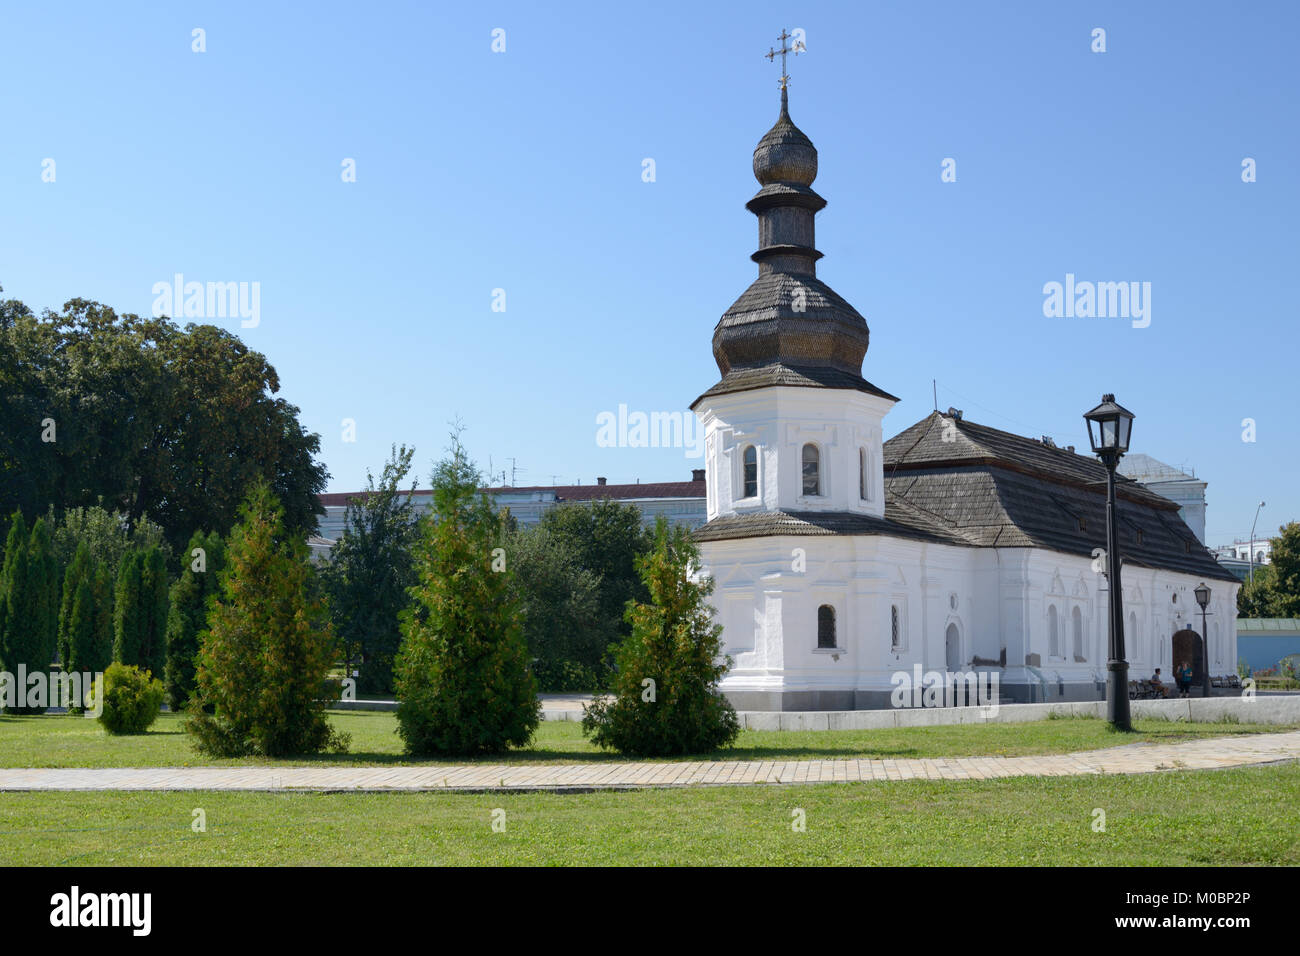 Kiev, Ukraine - August 20, 2013: Refectory with the church of St. John the Divine in St. Michael's Golden-Domed - Stock Image